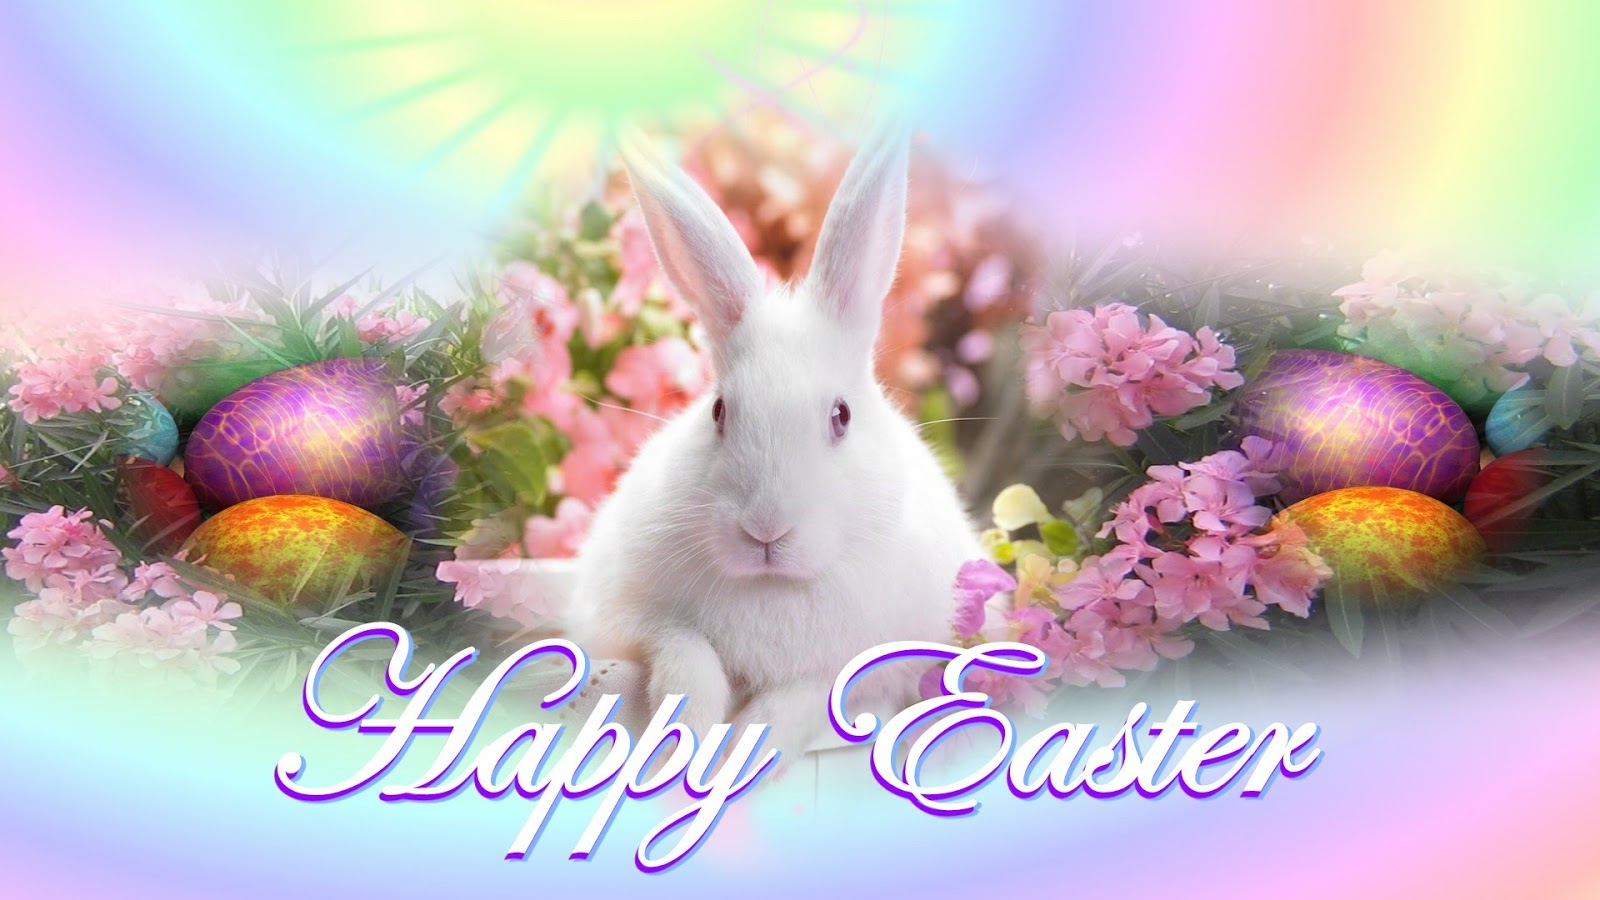 Happy Easter Day || Download 2018 Wishes Images HD Wallpapers